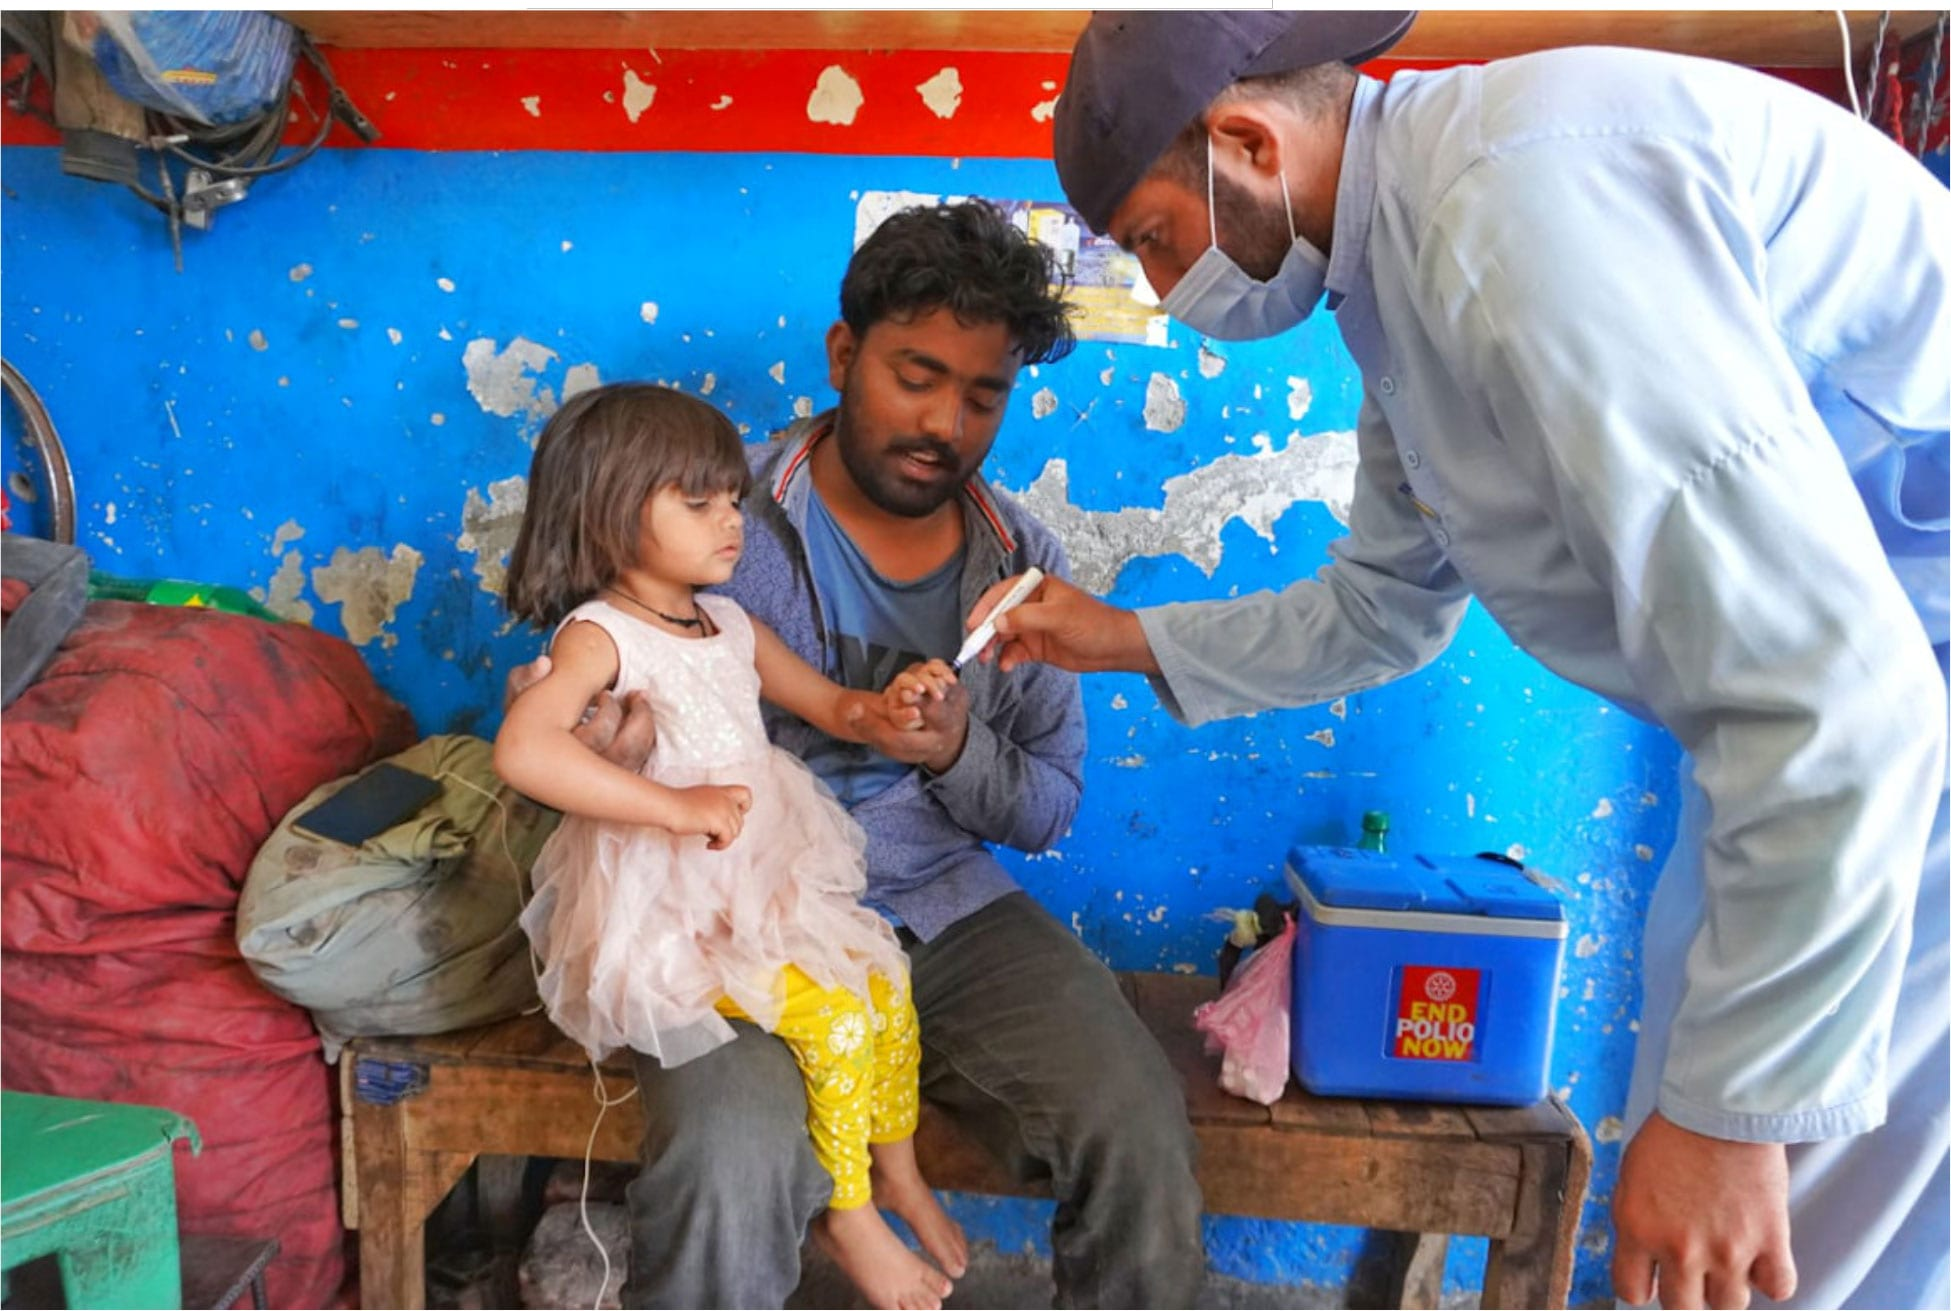 A vaccinator marking a vaccinated child